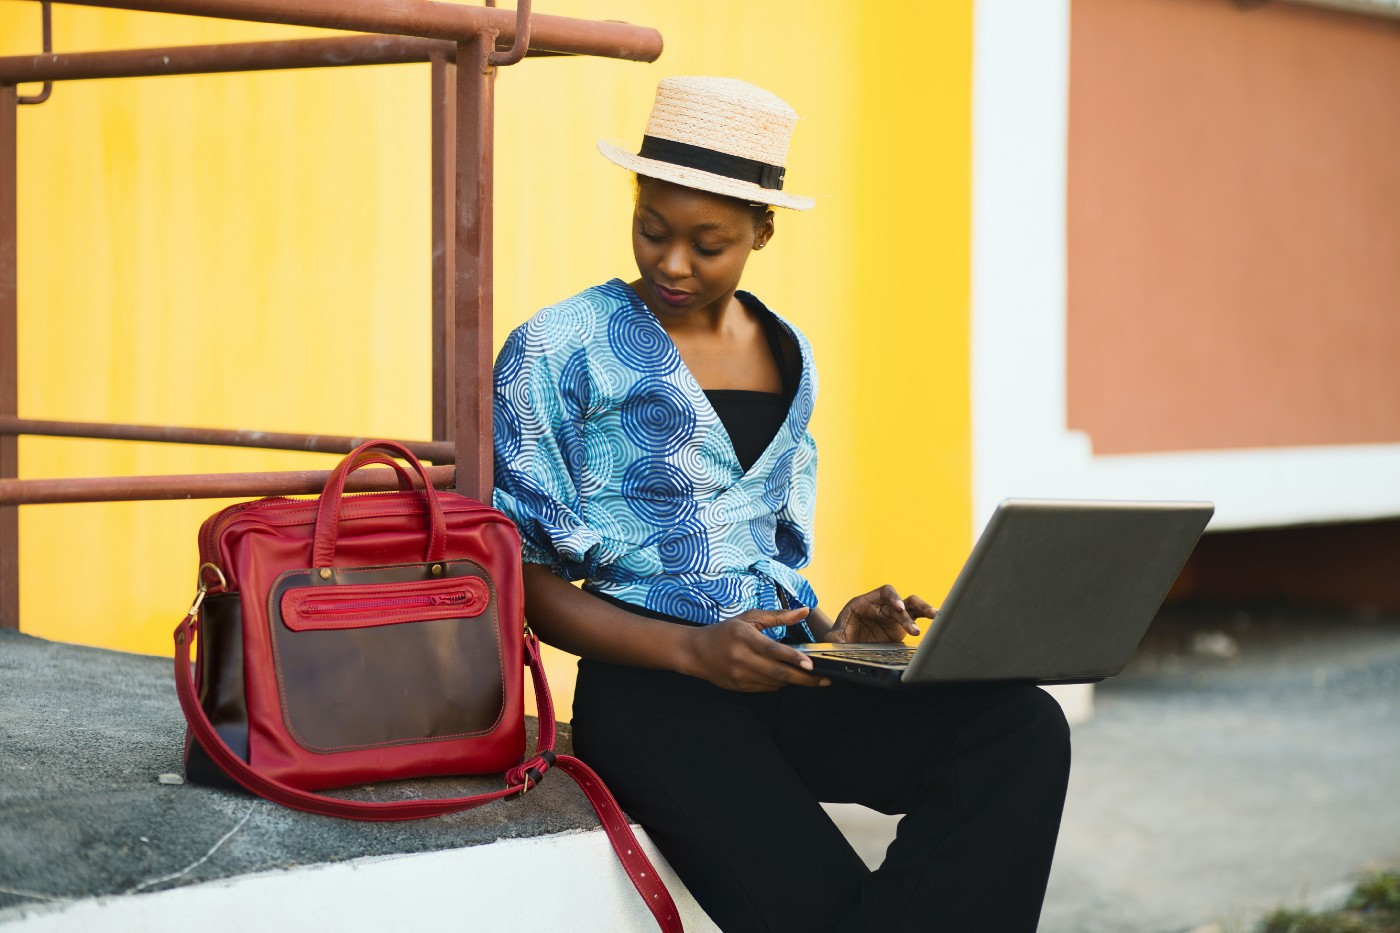 Woman sitting in front of a yellow wall beside a red bag while using a laptop